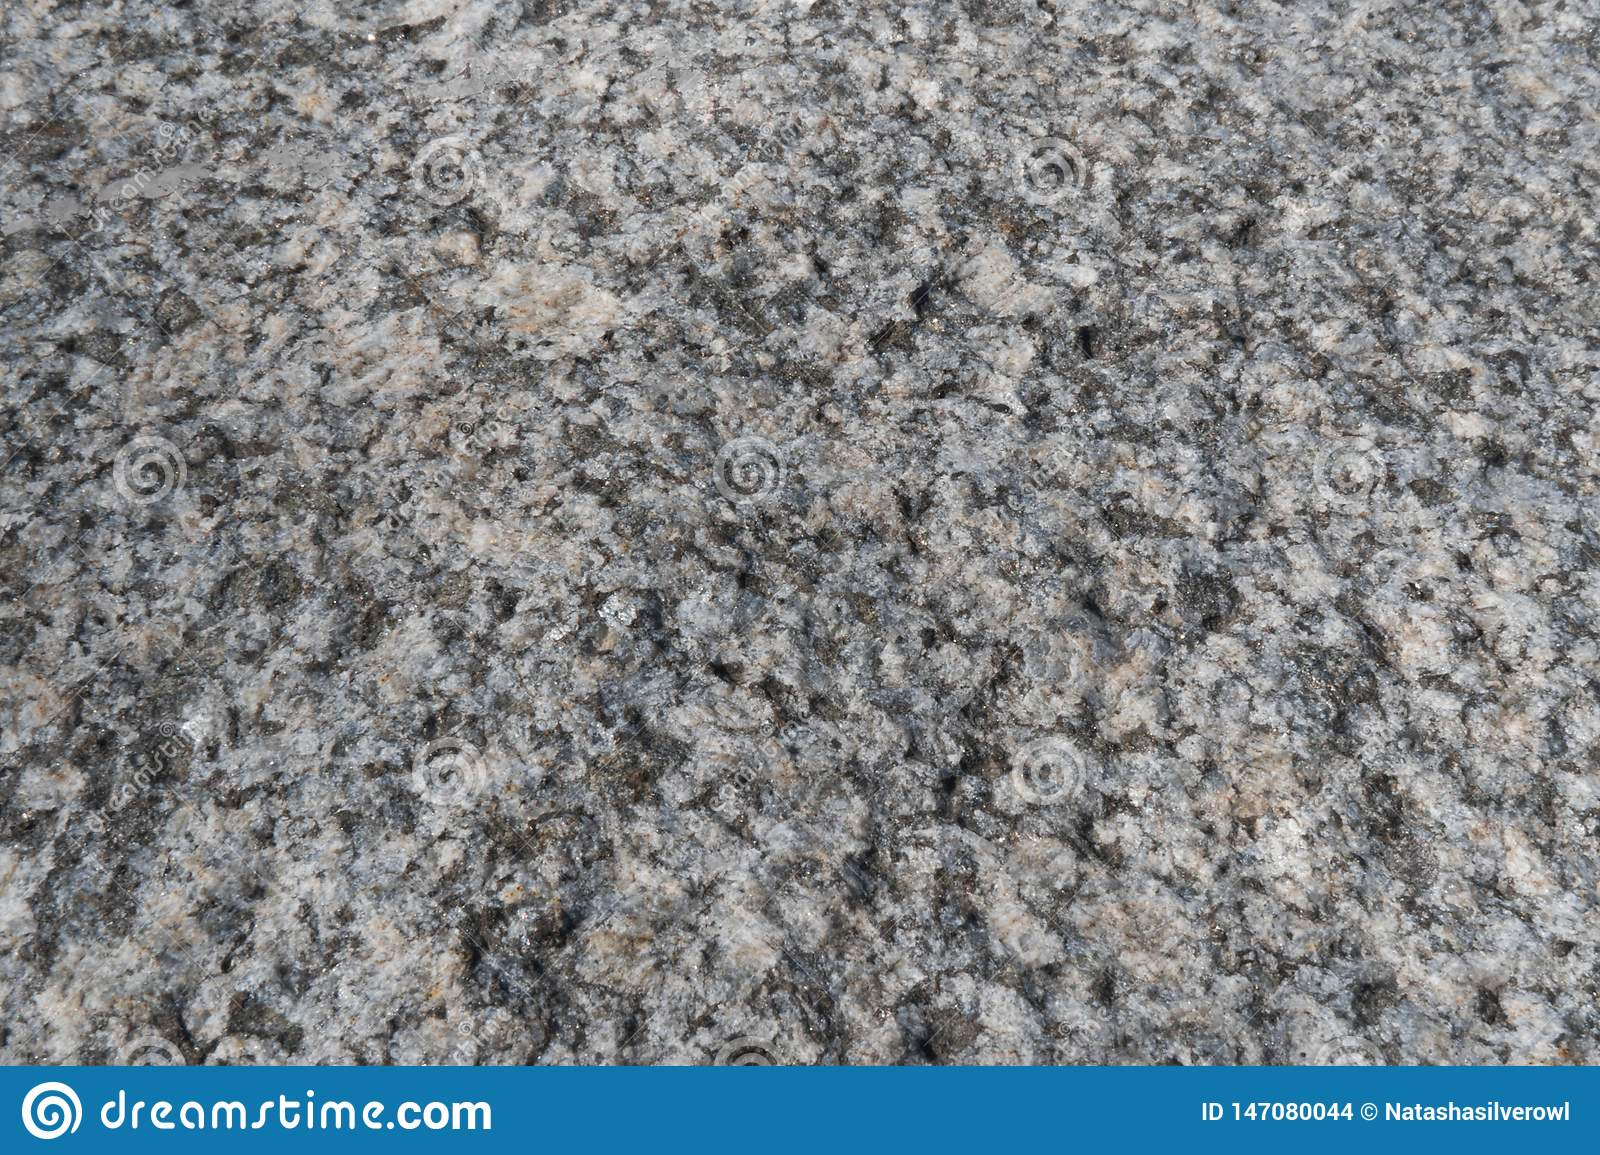 Granite Crumb Texture Grey Gritty Rock Surface Non Polished White Granite As A Background Texture For Illustration Stock Photo Image Of Nature Color 147080044